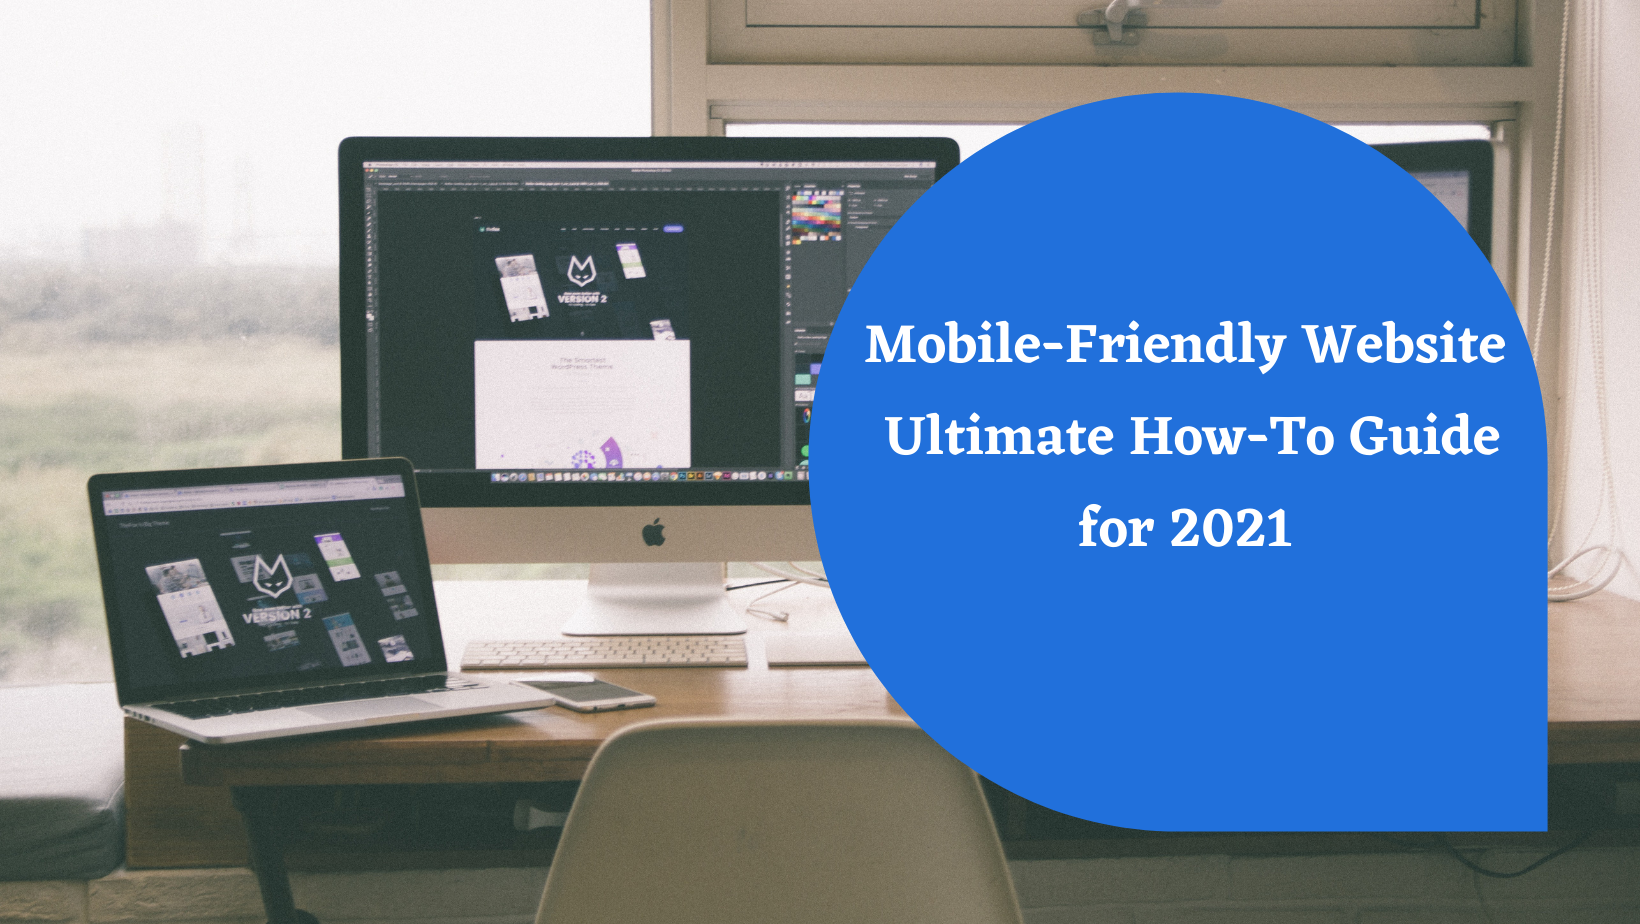 Mobile-Friendly Website: Ultimate How-To Guide for 2021